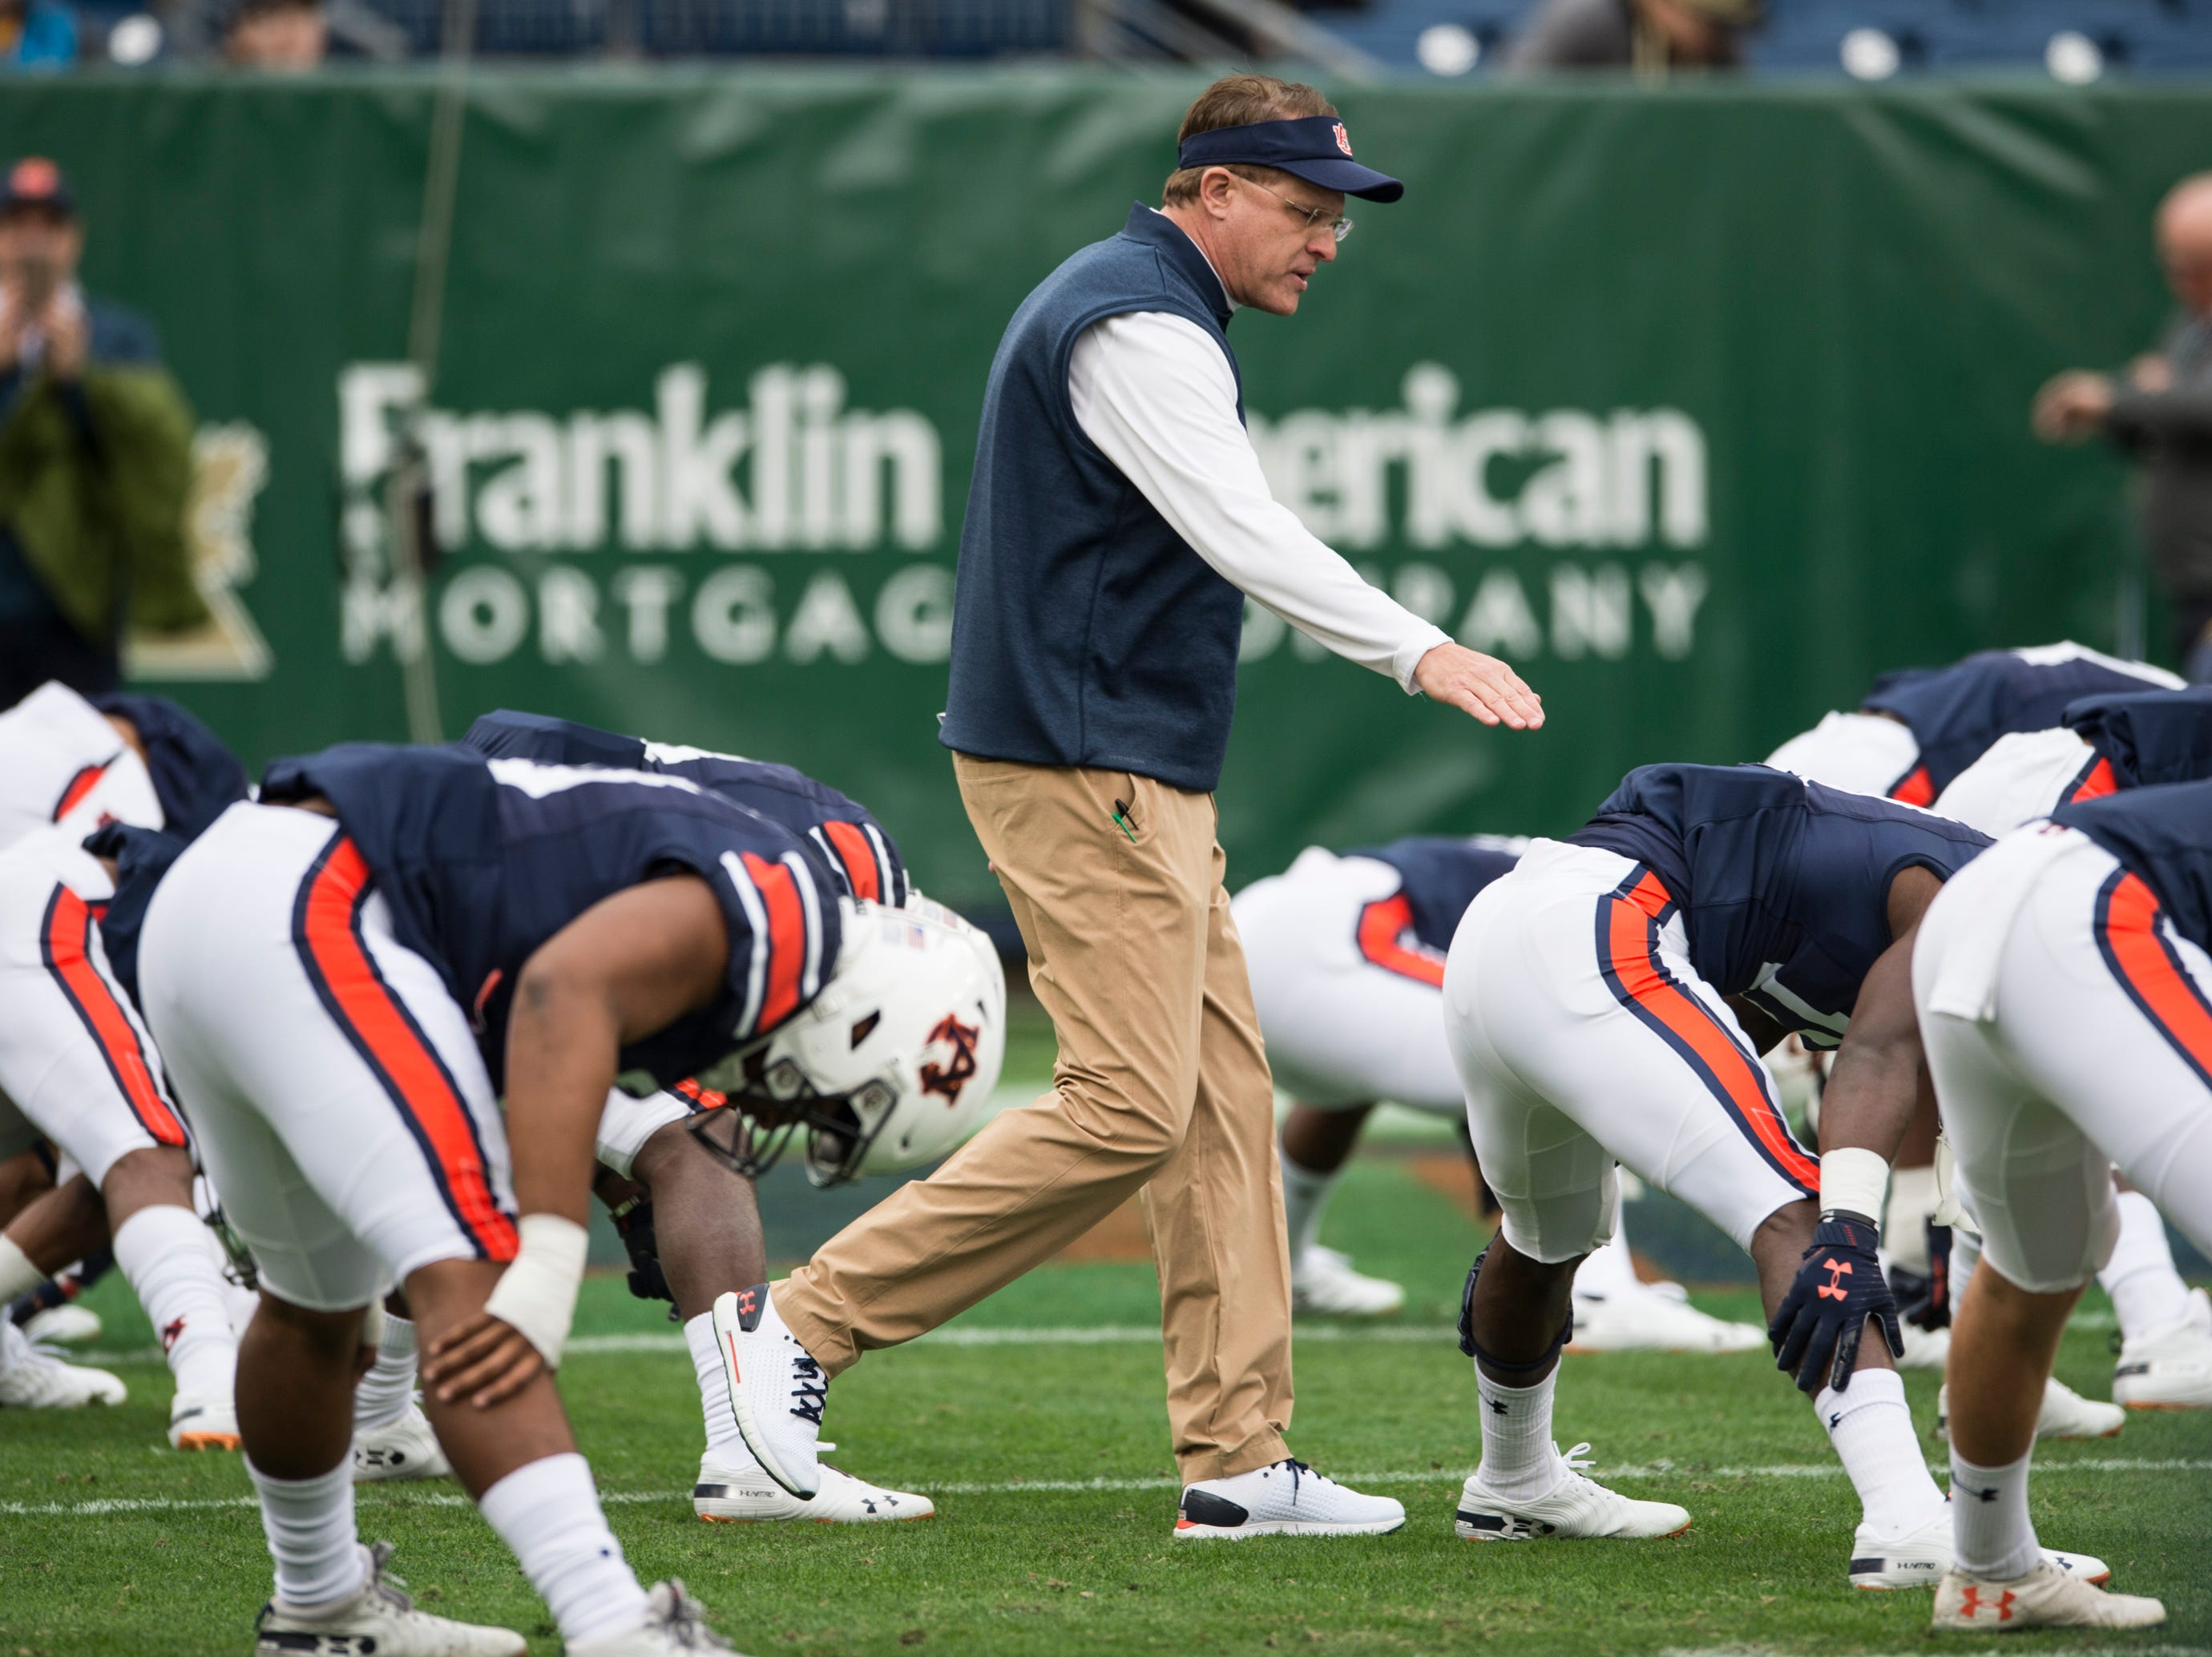 Auburn head coach Gus Malzahn acknowledges his players during warm ups before the Music City Bowl at Nissan Stadium in Nashville, Tenn., on Friday, Dec. 28, 2018.